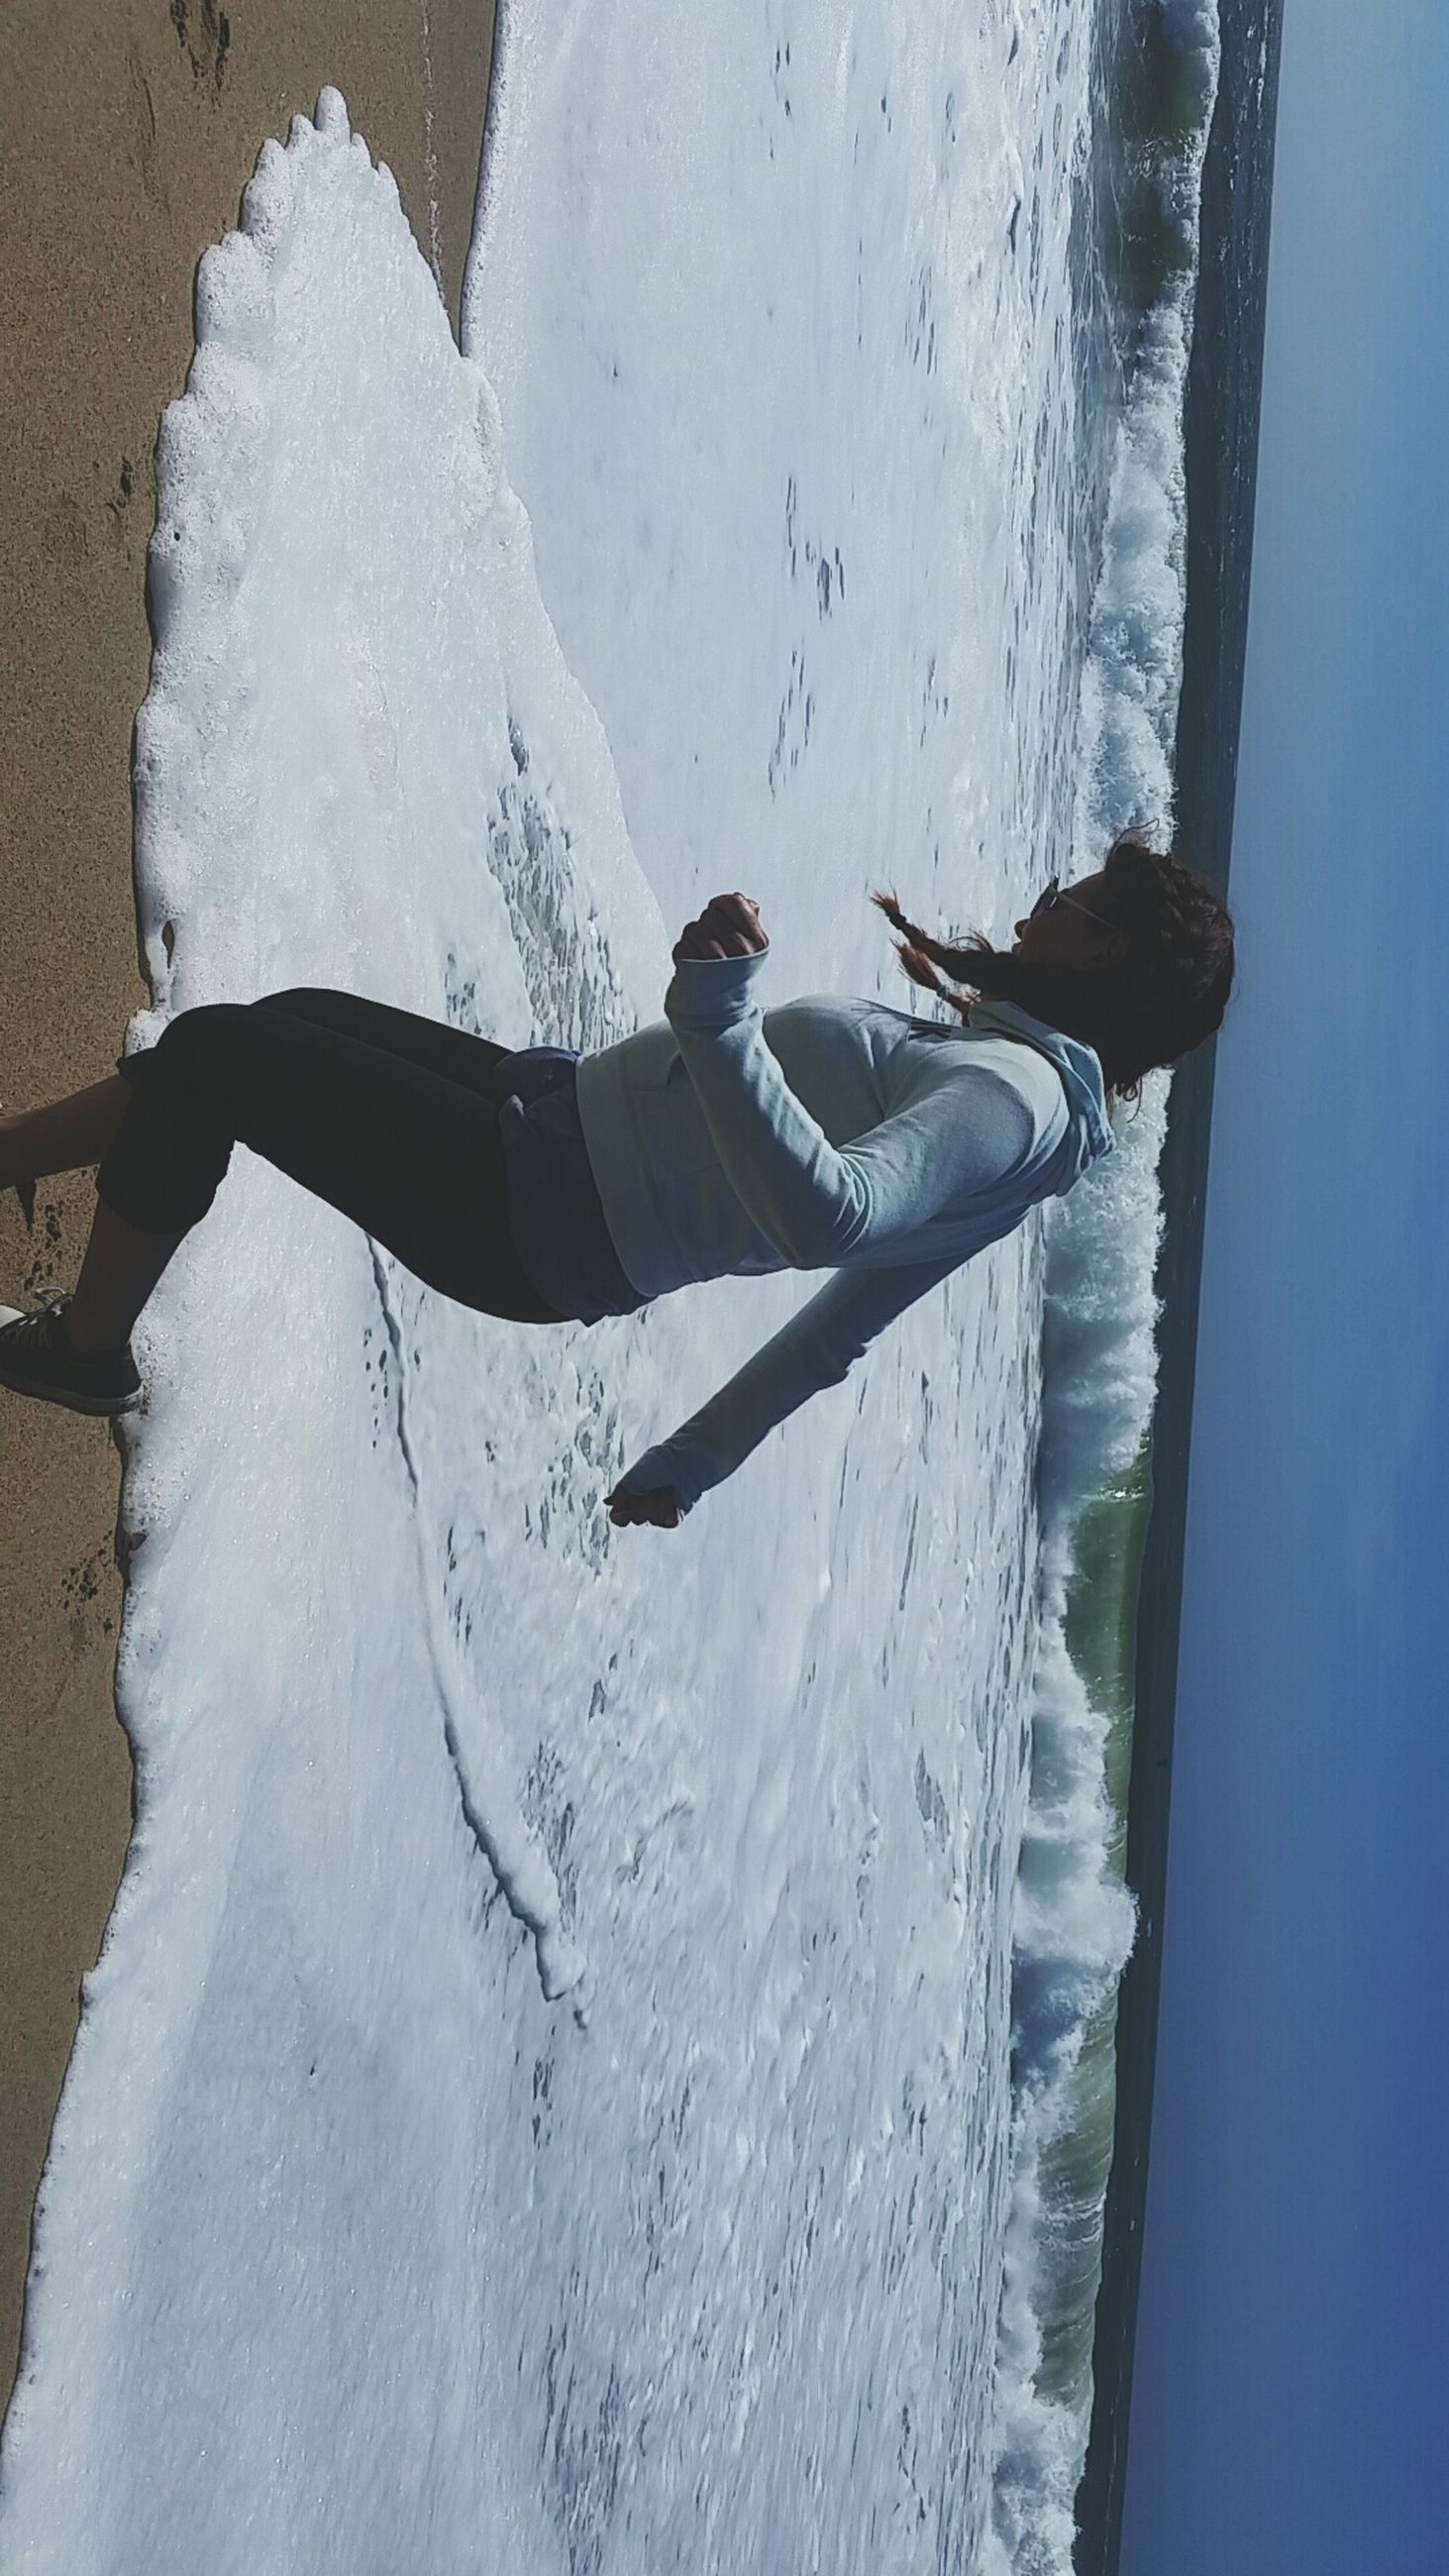 leisure activity, lifestyles, winter, water, cold temperature, snow, full length, season, motion, men, vacations, enjoyment, surf, person, high angle view, day, fun